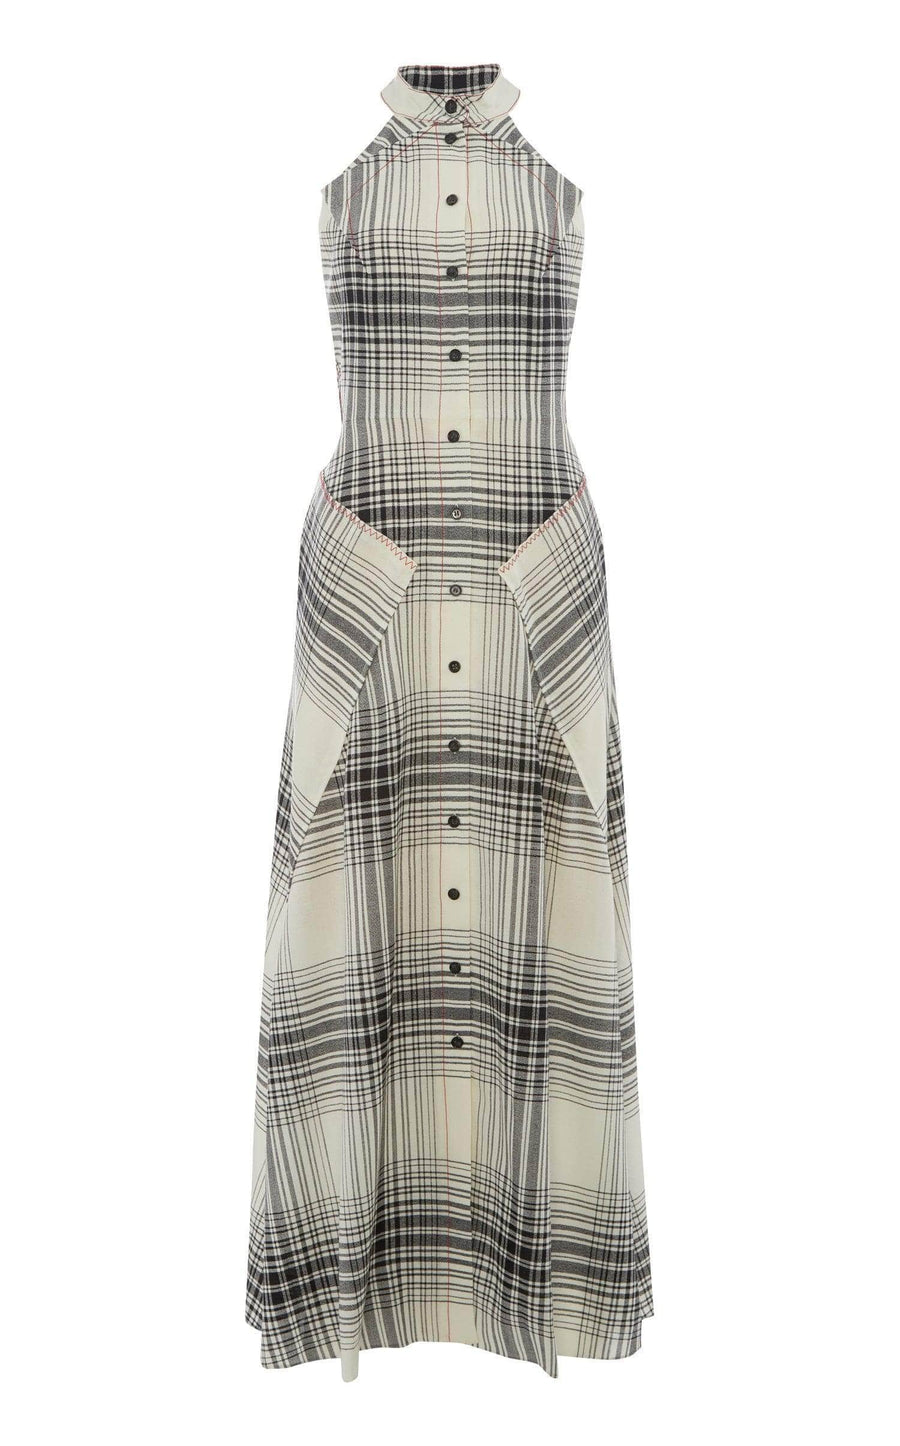 Amador Dress In Monochrome from Roland Mouret